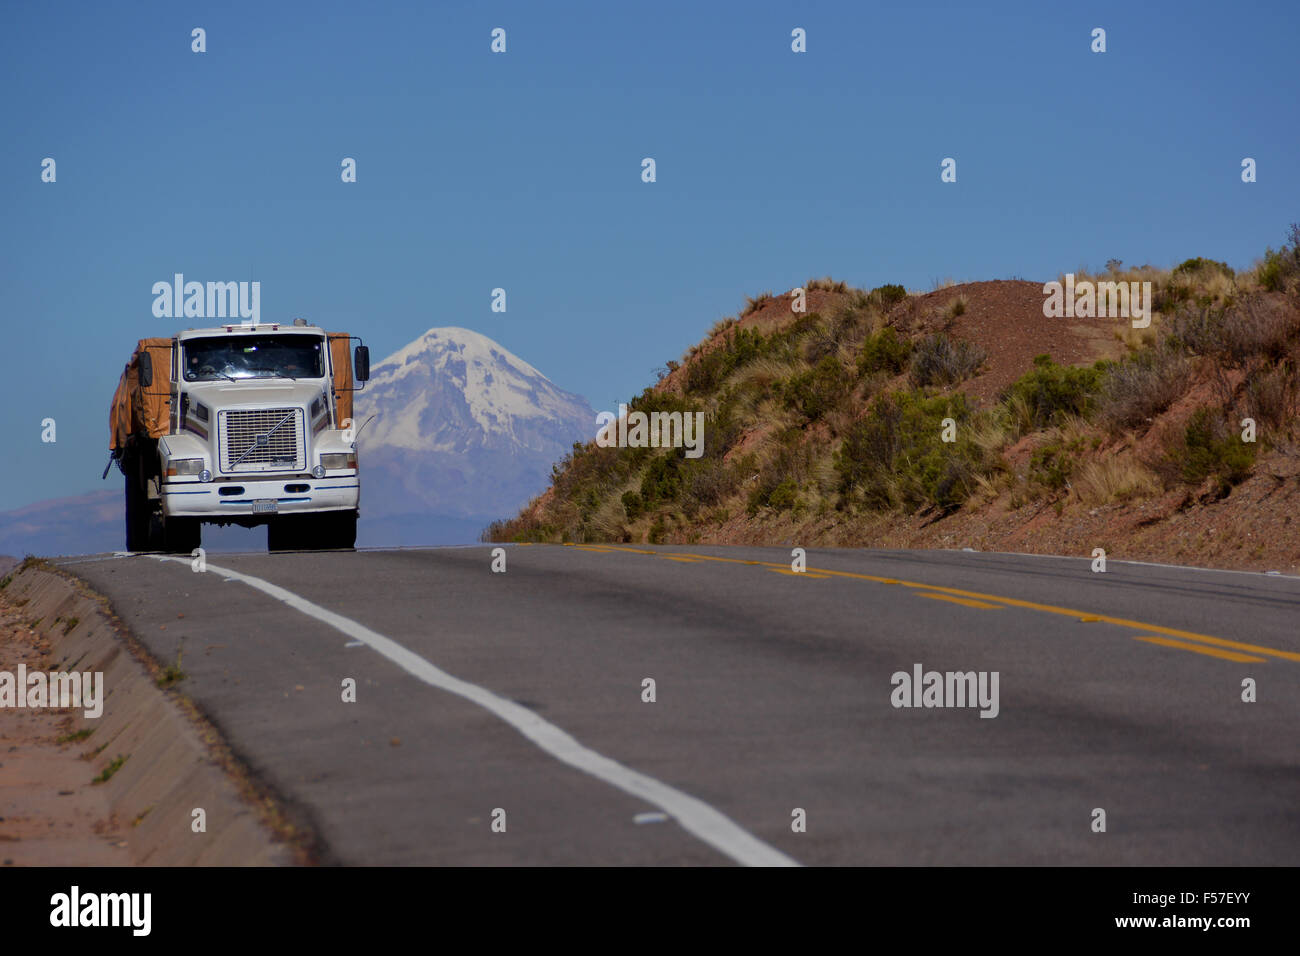 Truck on the road in front of the Sajama volcano, Altiplano, border to Bolivia, Chile - Stock Image